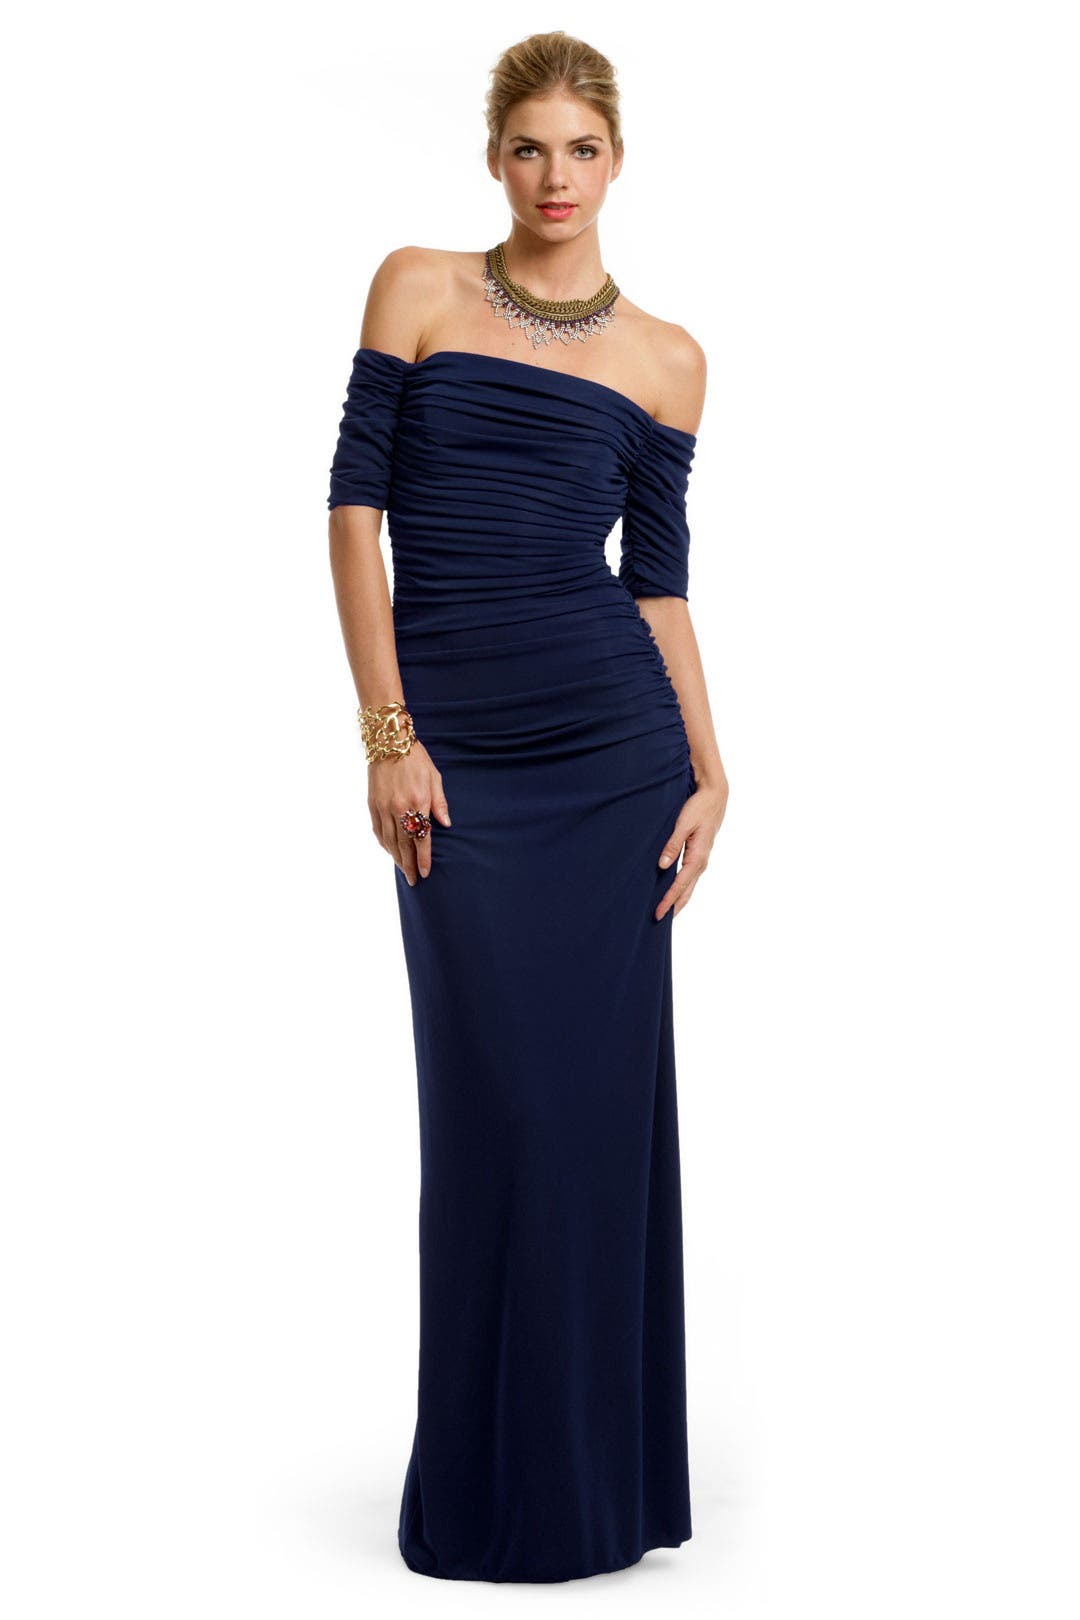 American Beauty Gown by Badgley Mischka